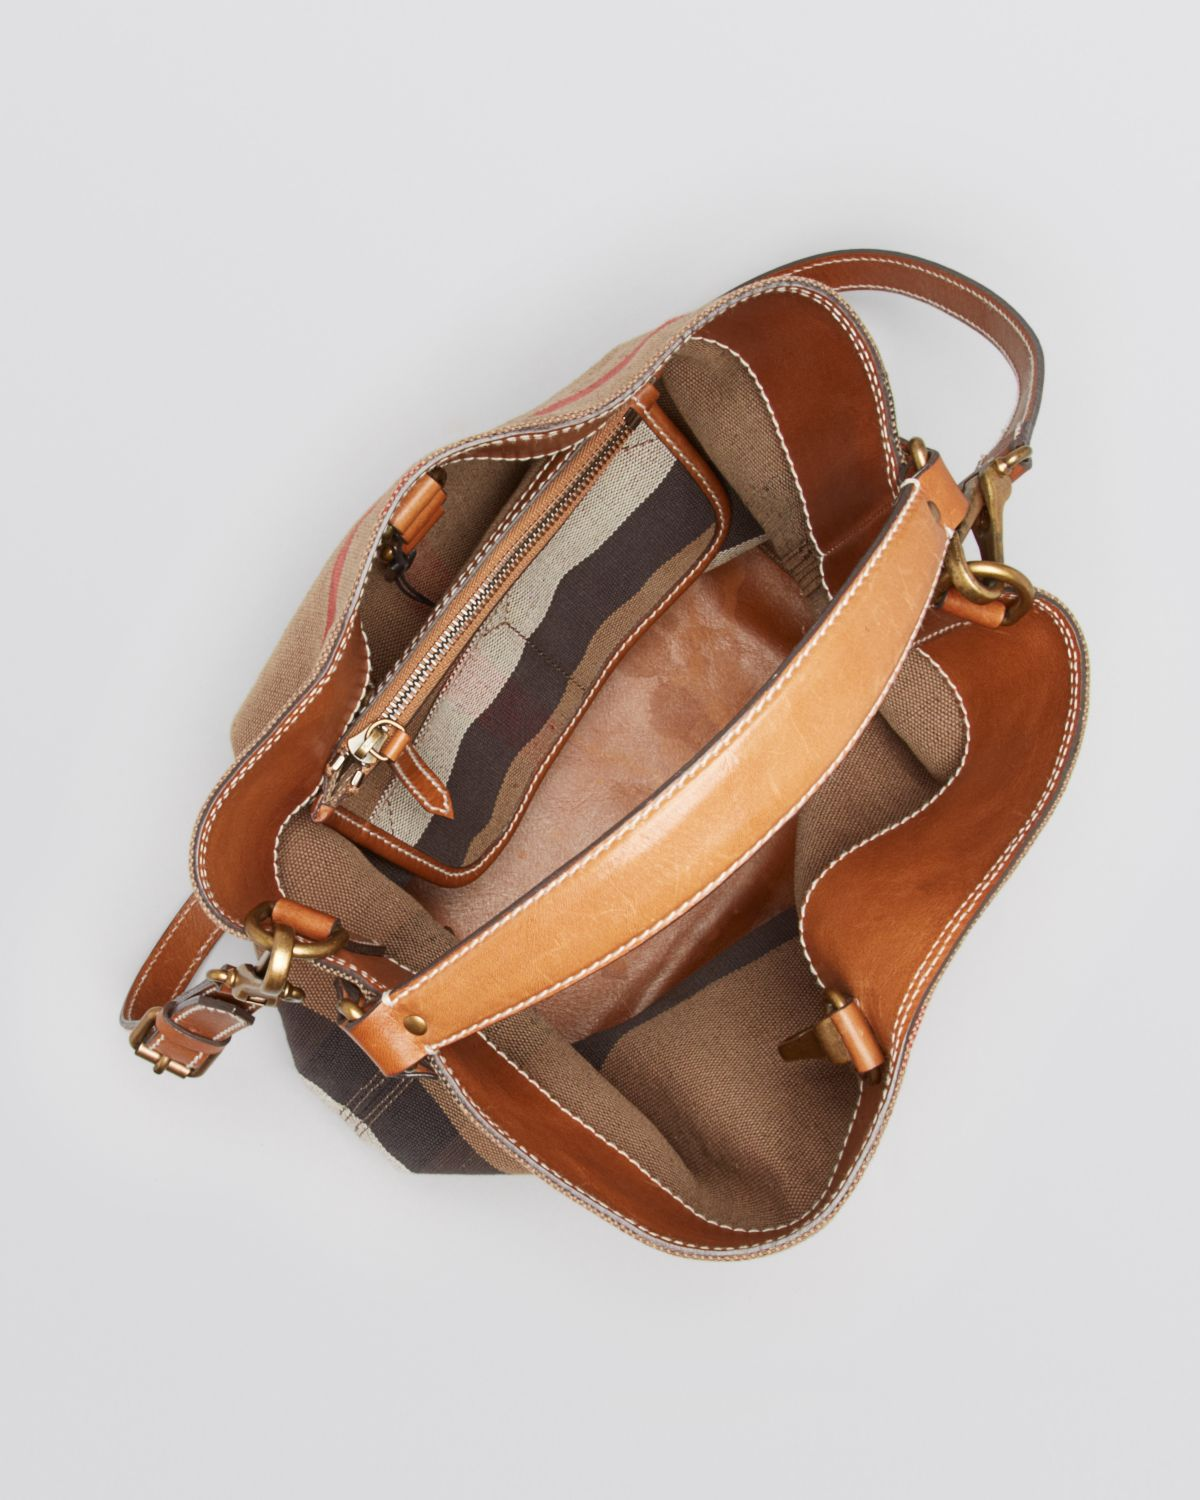 Lyst - Burberry Canvas Check Medium Ashby Hobo in Brown b4a7aed601a2c